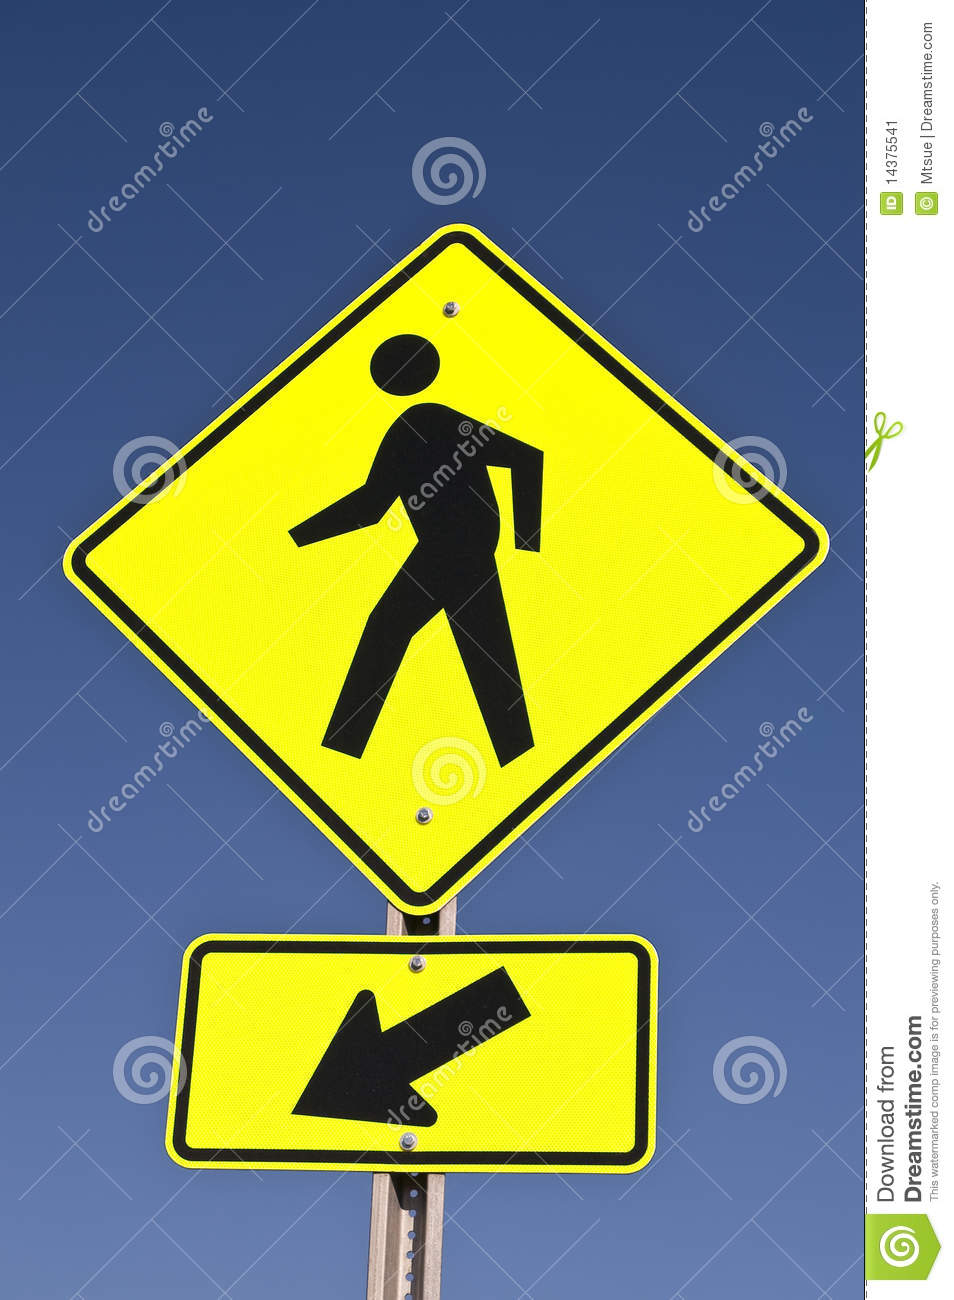 Crosswalk Sign Stock Image Image Of Crosswalk, Black. Flag Signs. Airport Check In Signs. Immunocompromised Signs. Pointing Signs. Sanitary Signs Of Stroke. Incomplete Signs. Bio Signs. Foam Board Signs Of Stroke